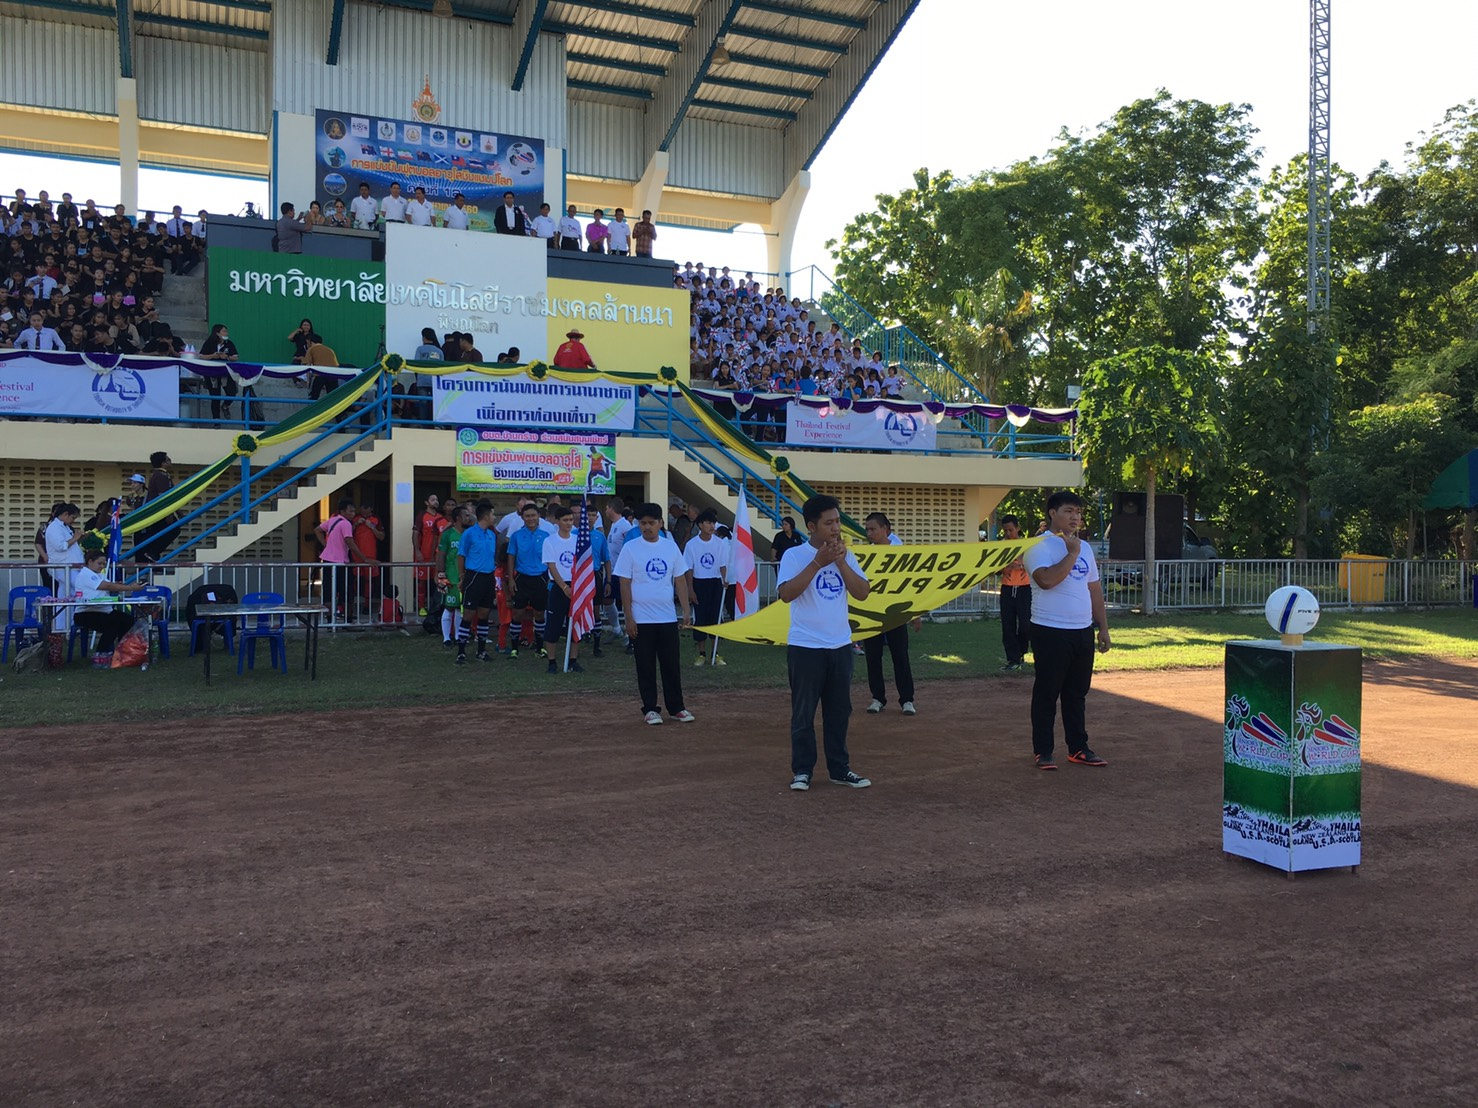 RMUTL, Phitsanulok with the government sector and private sectors, host the 12th Senior Football Championship